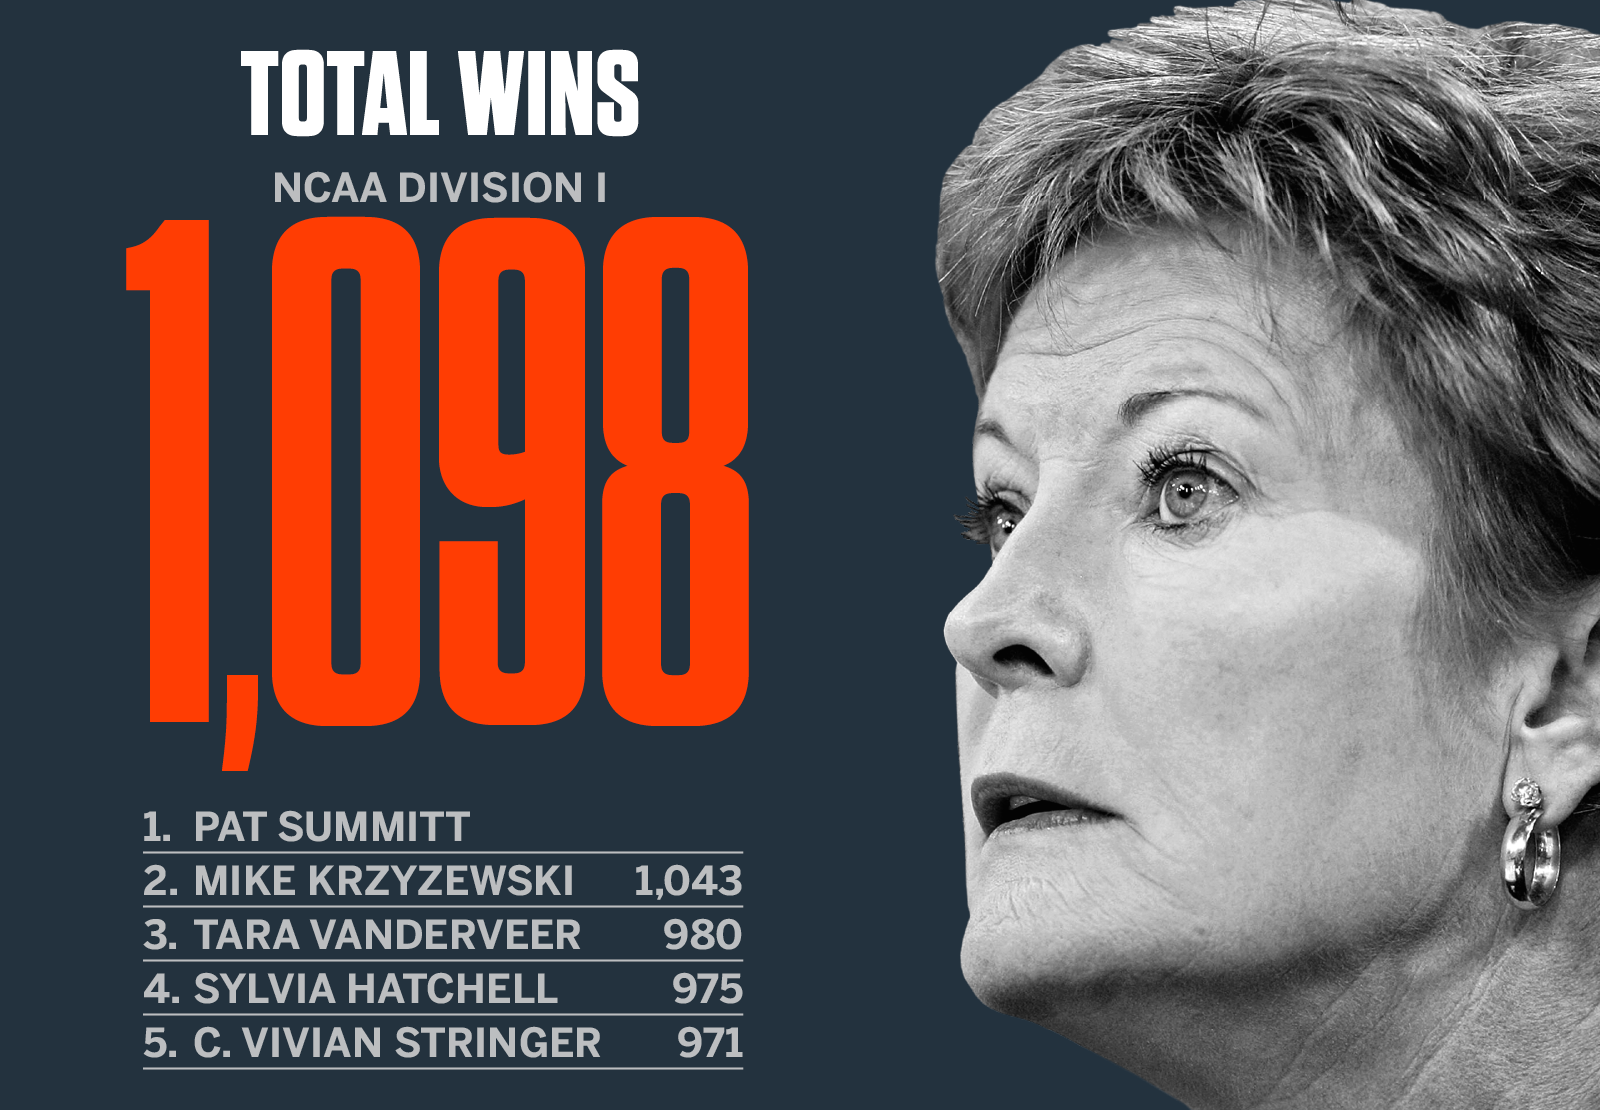 Upon her retirement, Summitt had the most college basketball wins of anyone in the country, male or female.